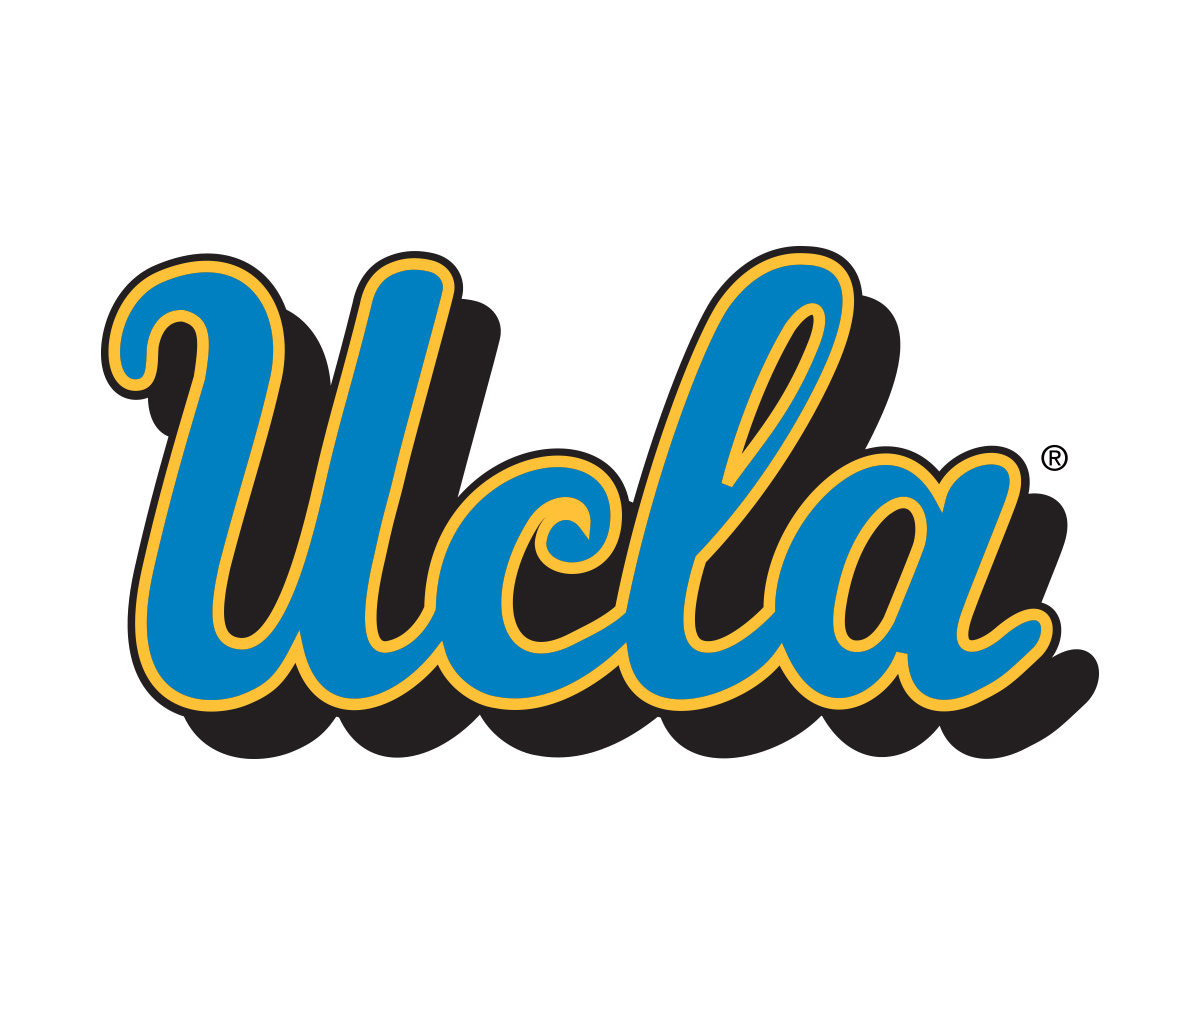 Ucla logo clip art picture royalty free Ucla logo clip art - ClipartFest picture royalty free